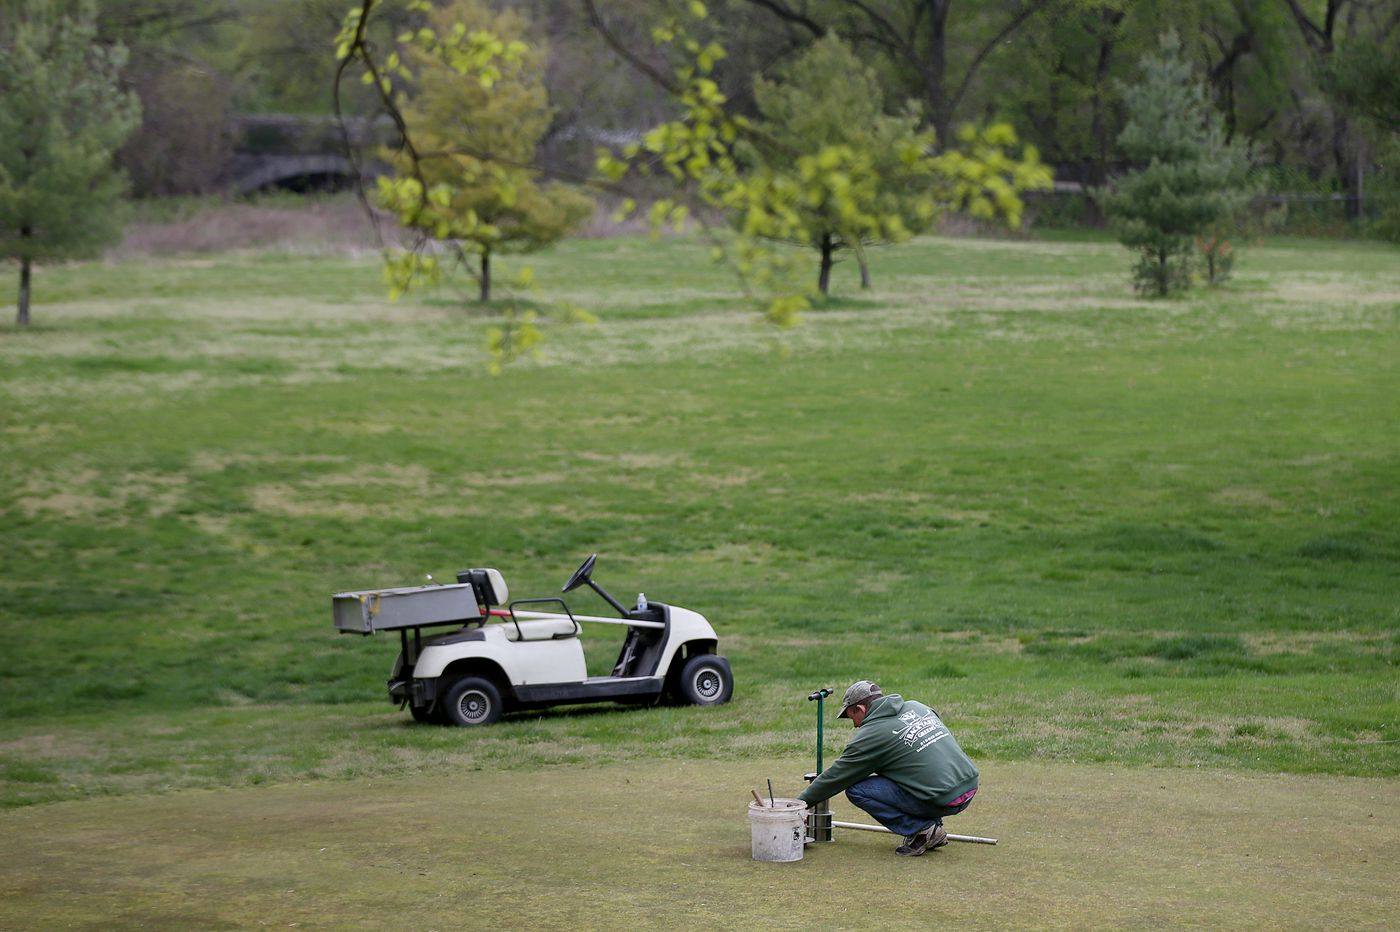 Pa. and N.J. golf courses have reopened. What you need to know before you play.